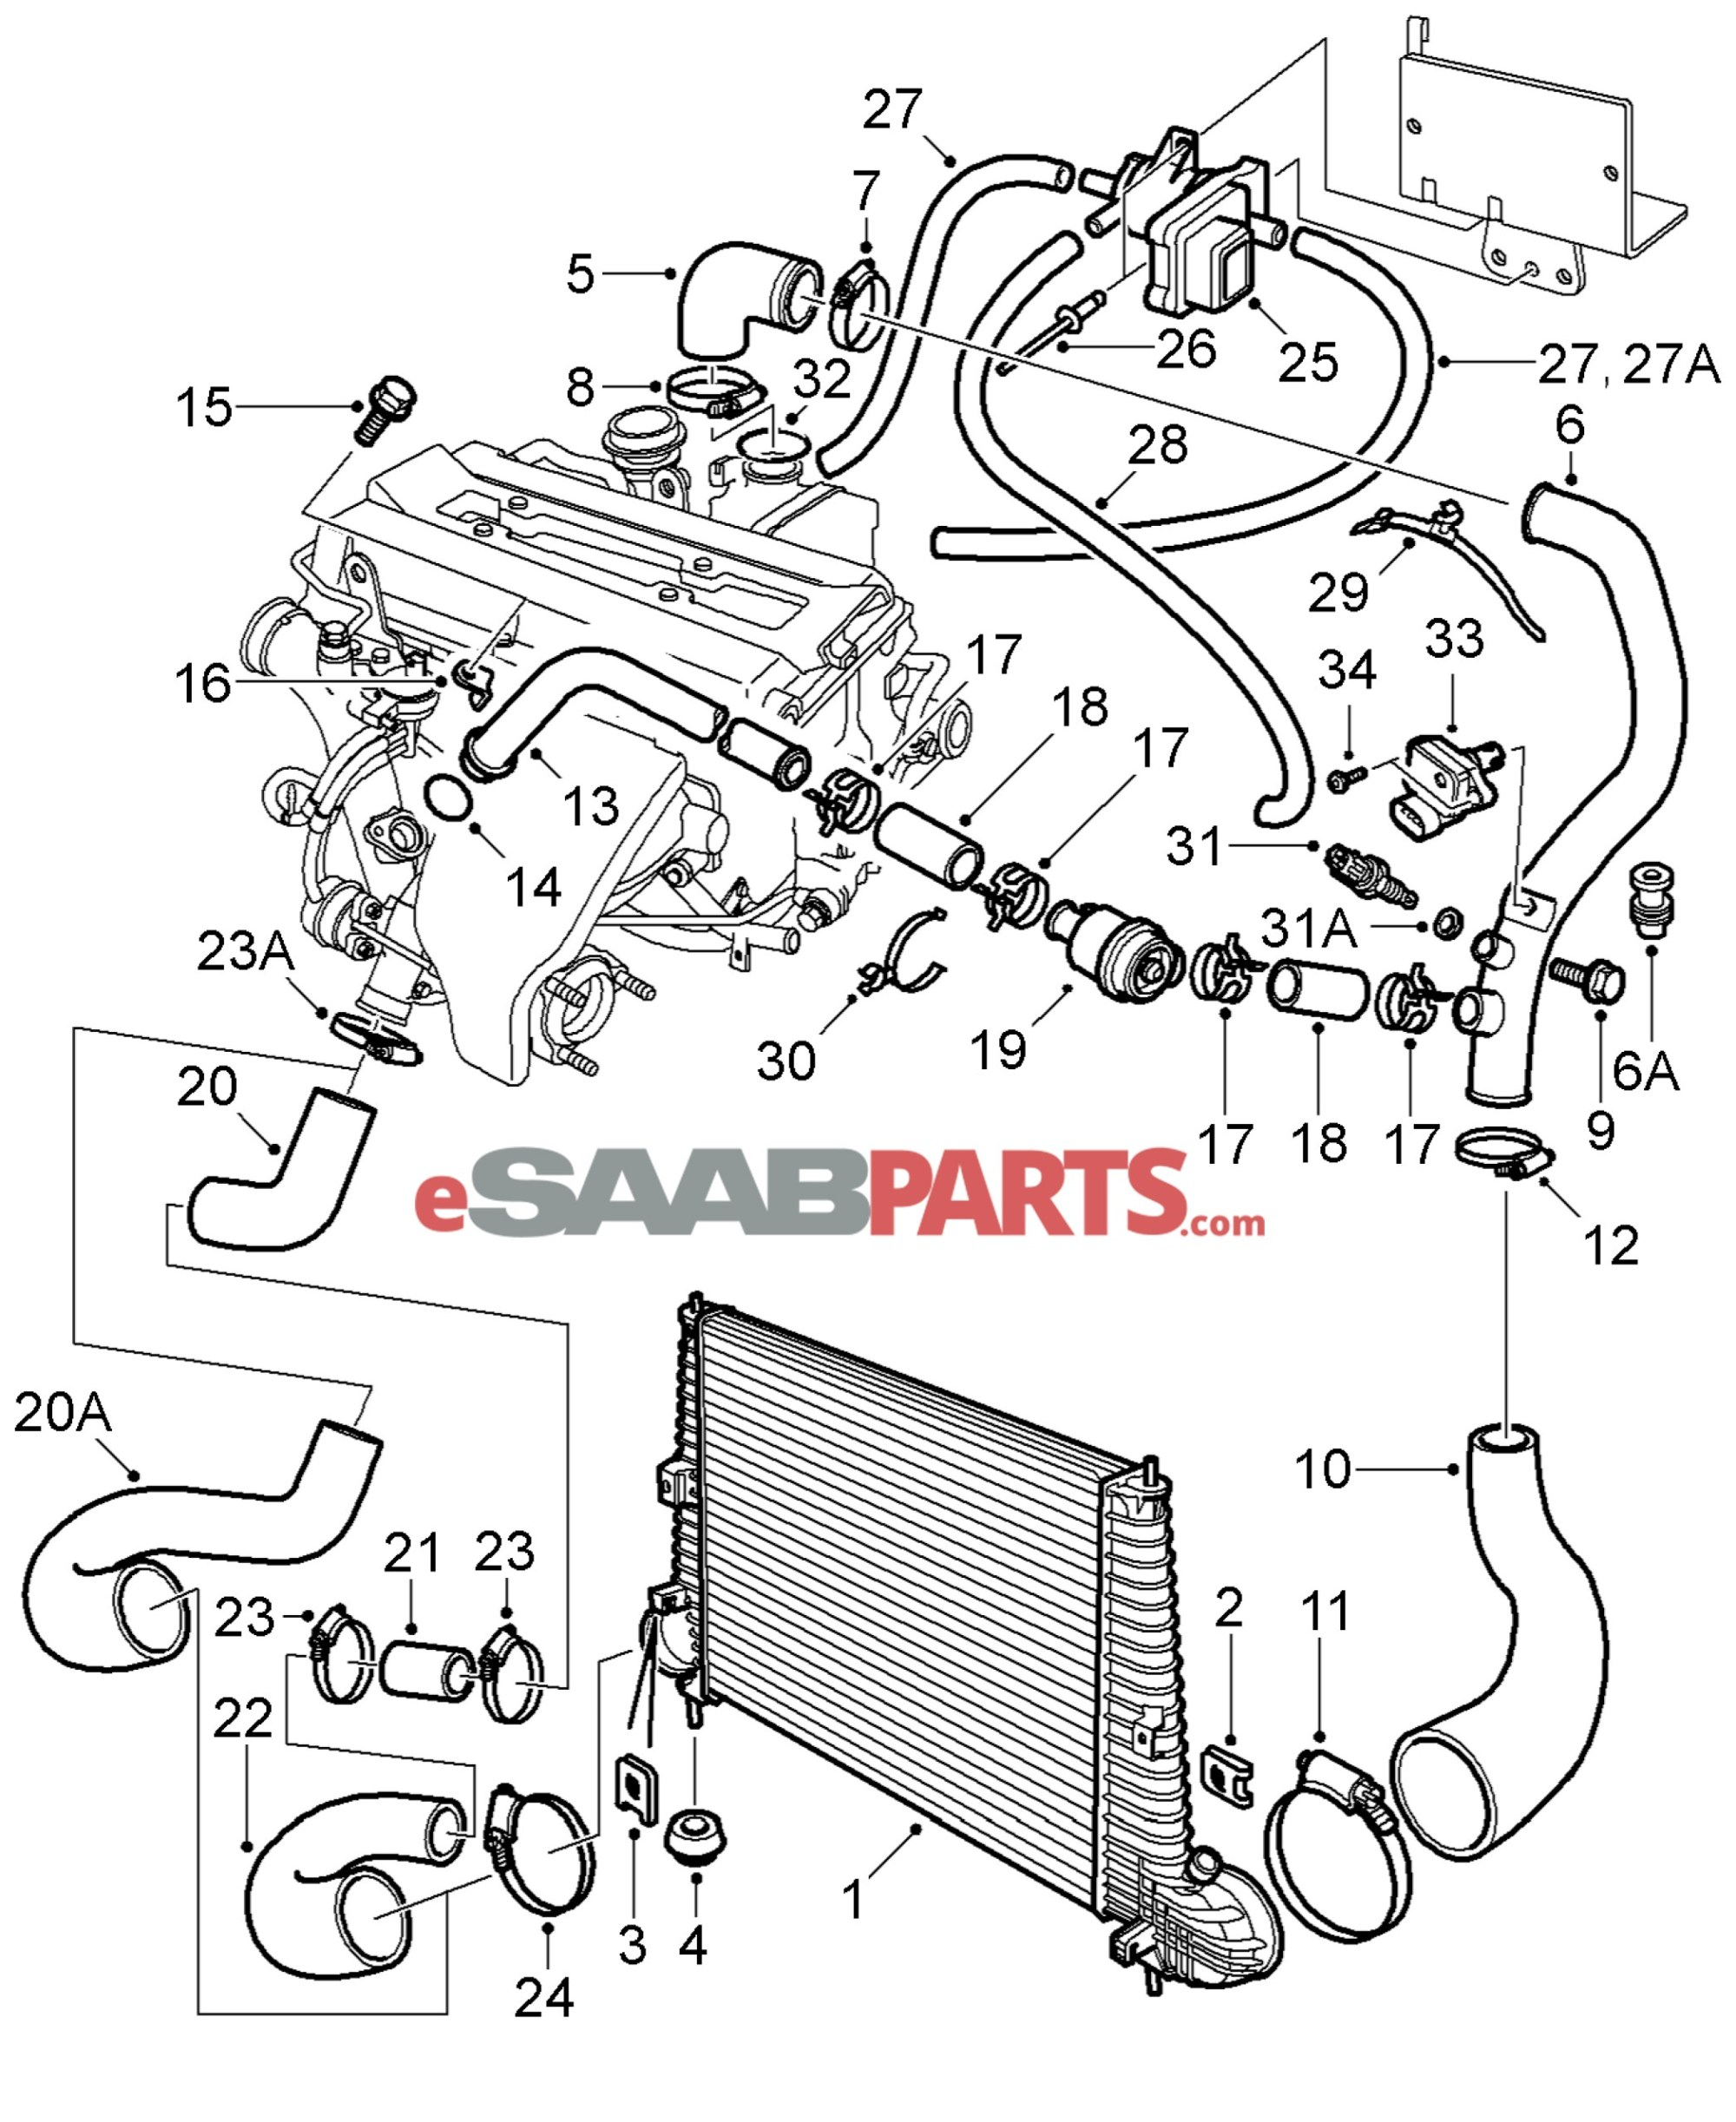 hight resolution of 2 3 linear saab engine diagram wiring diagram used saab 2 0 engine diagram